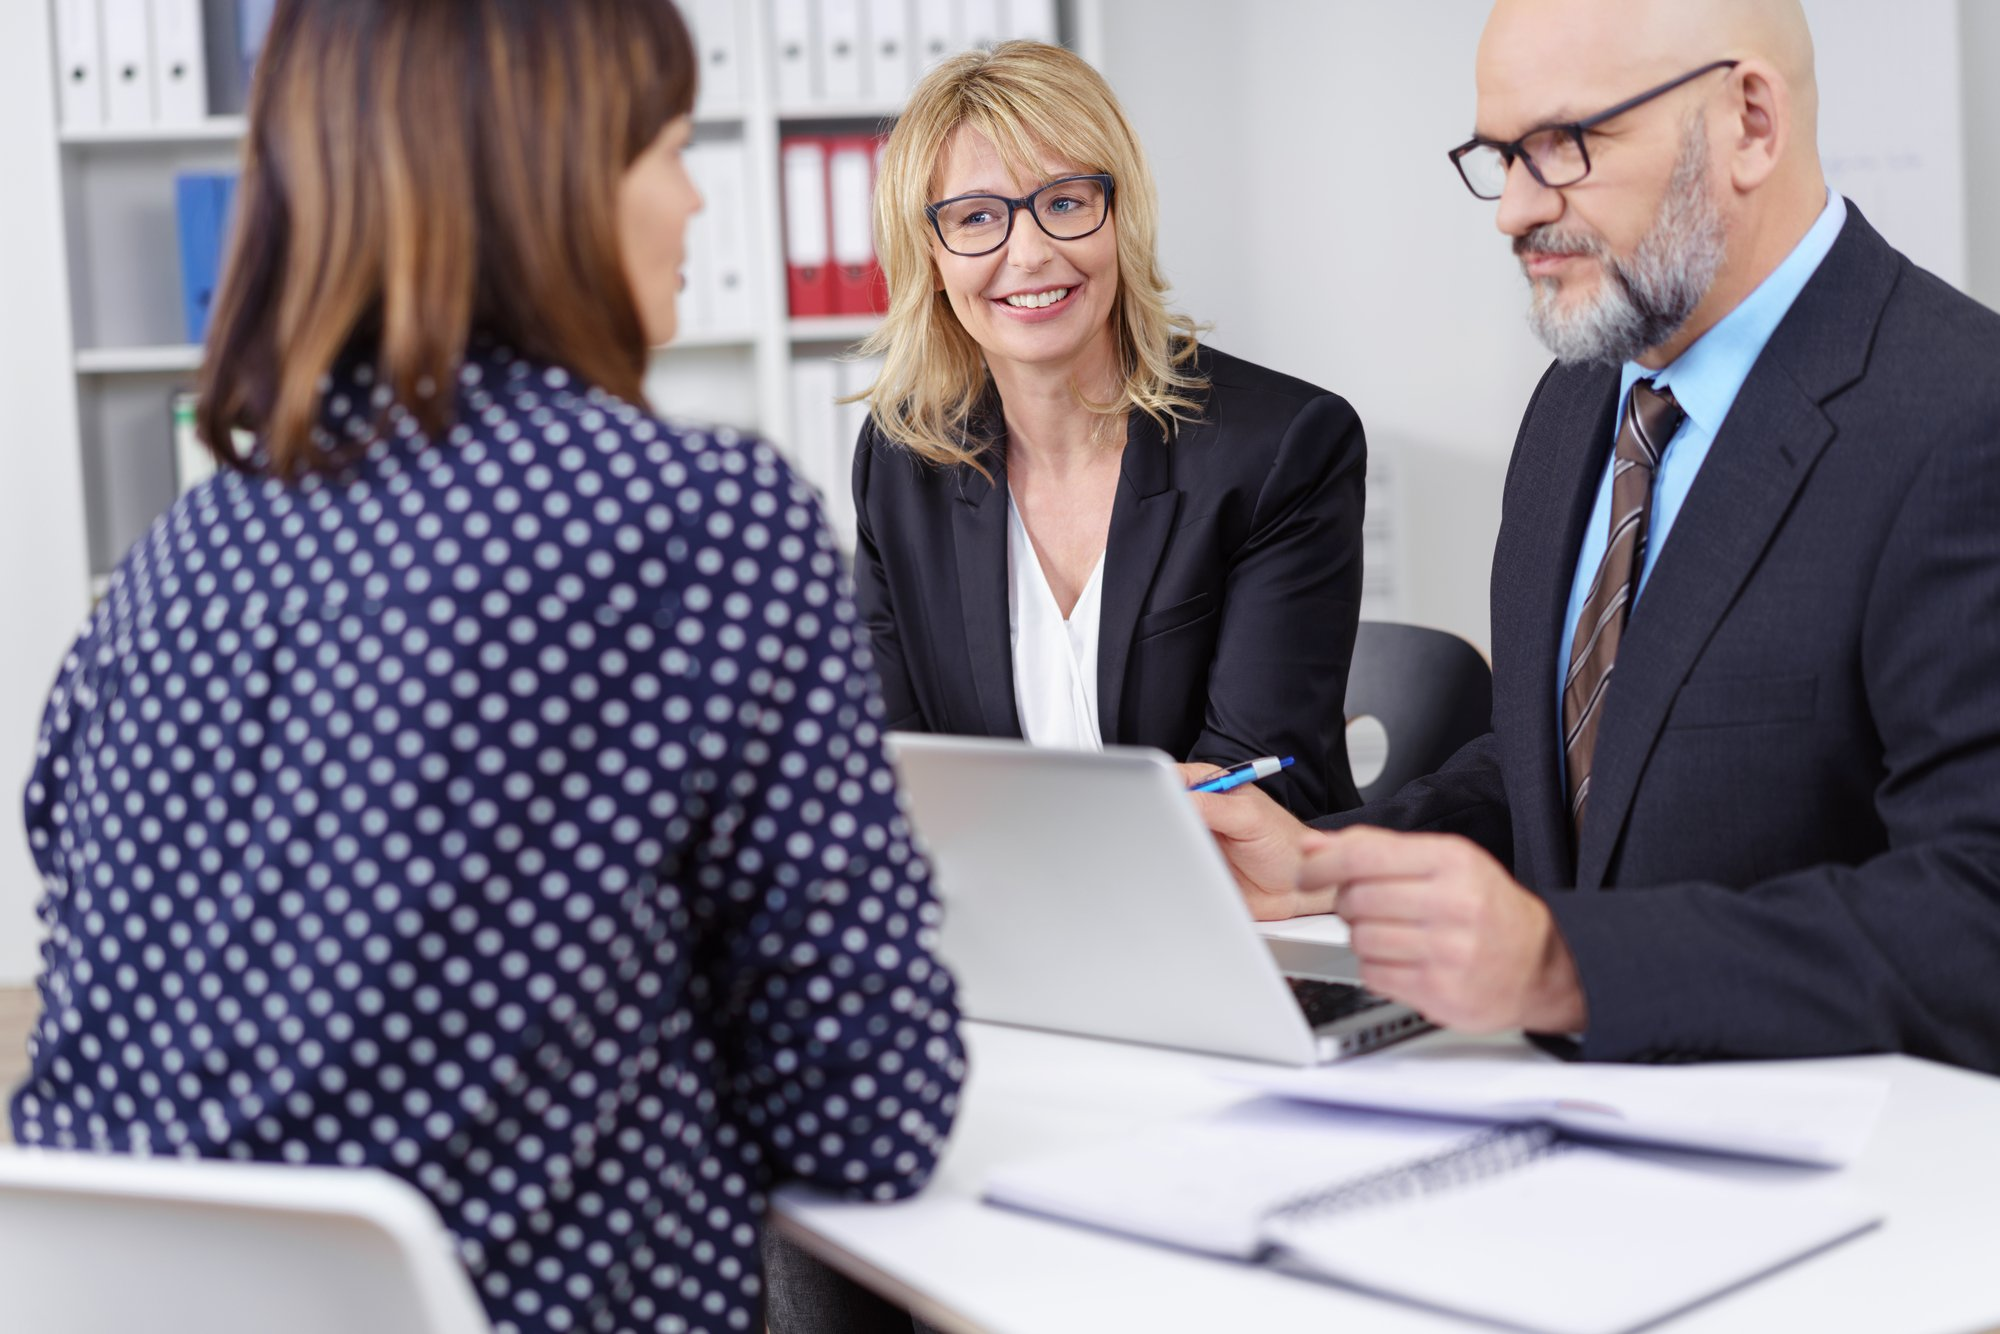 executive interview questions